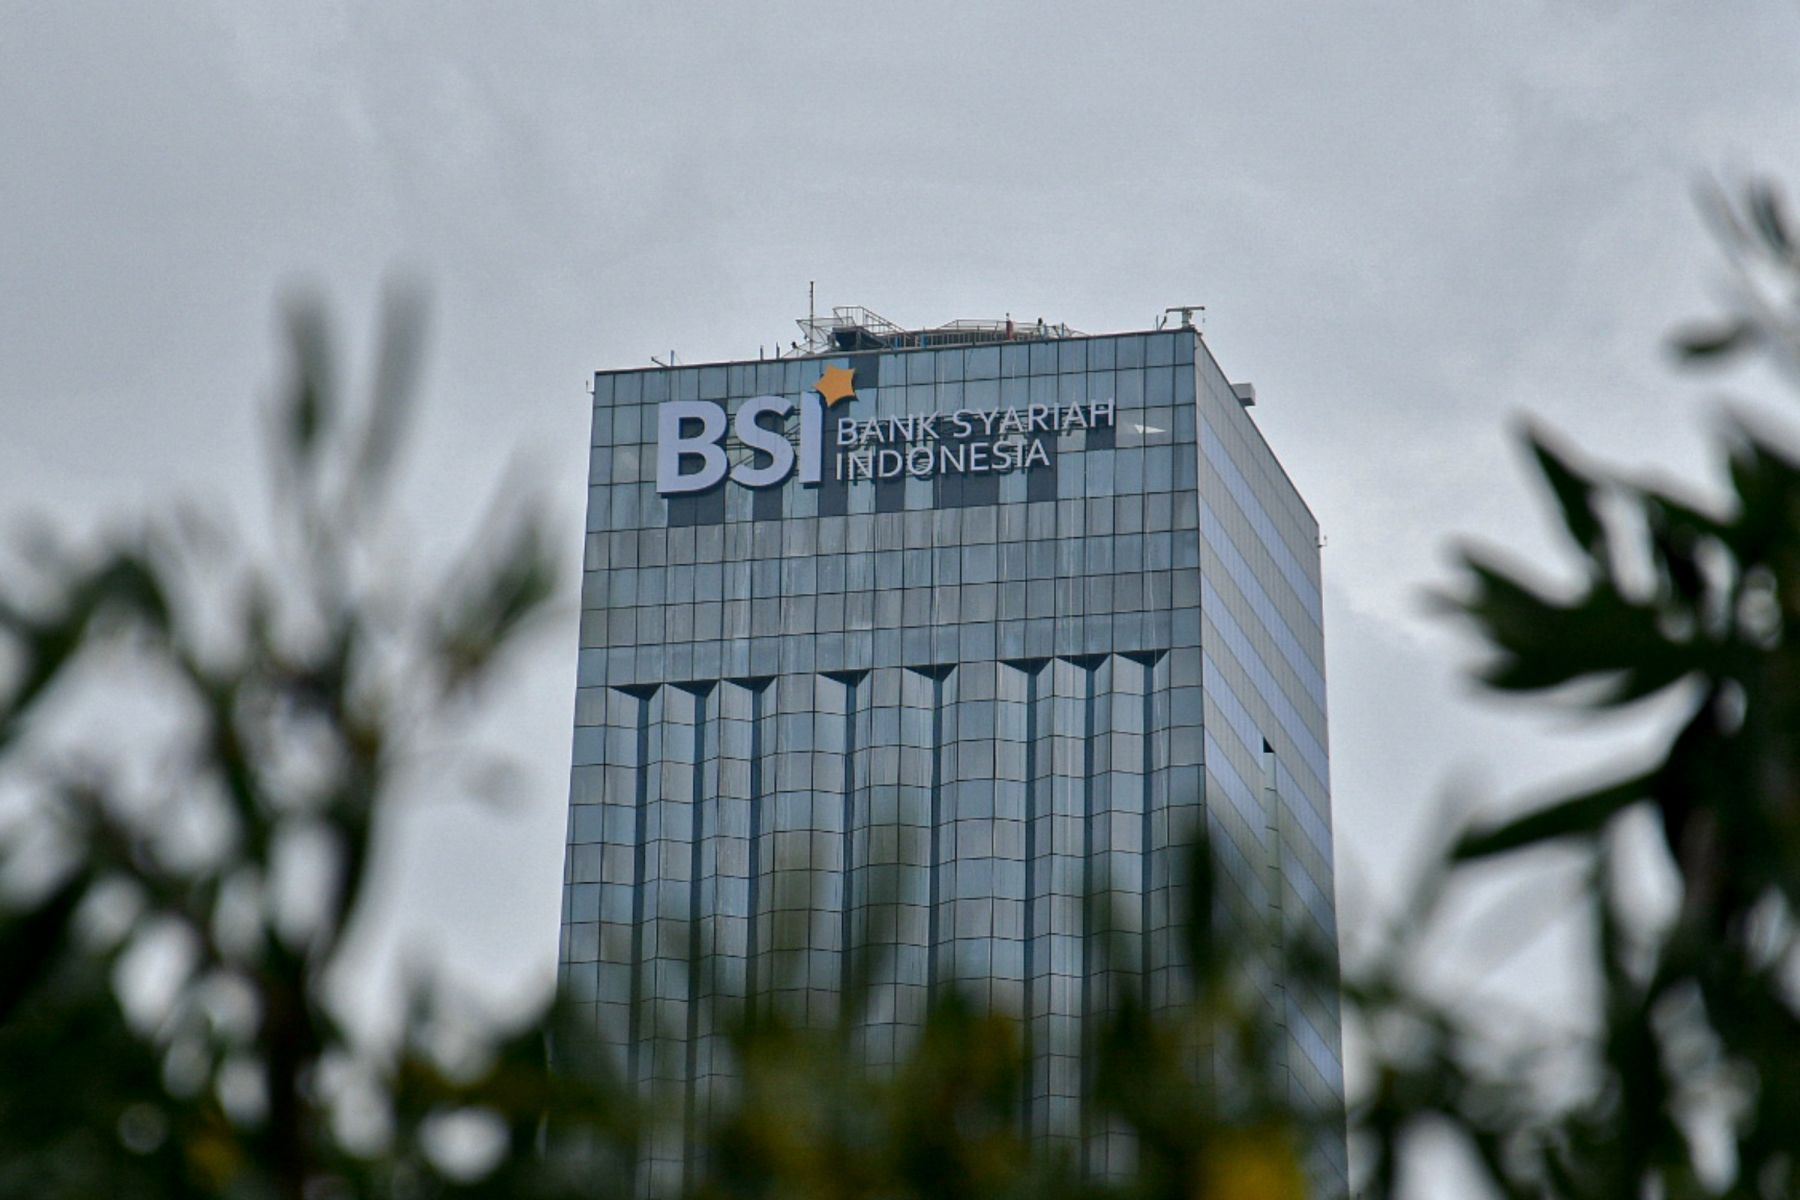 Indonesia Sharia Economy Outlook: The Merge of Three Largest Bank